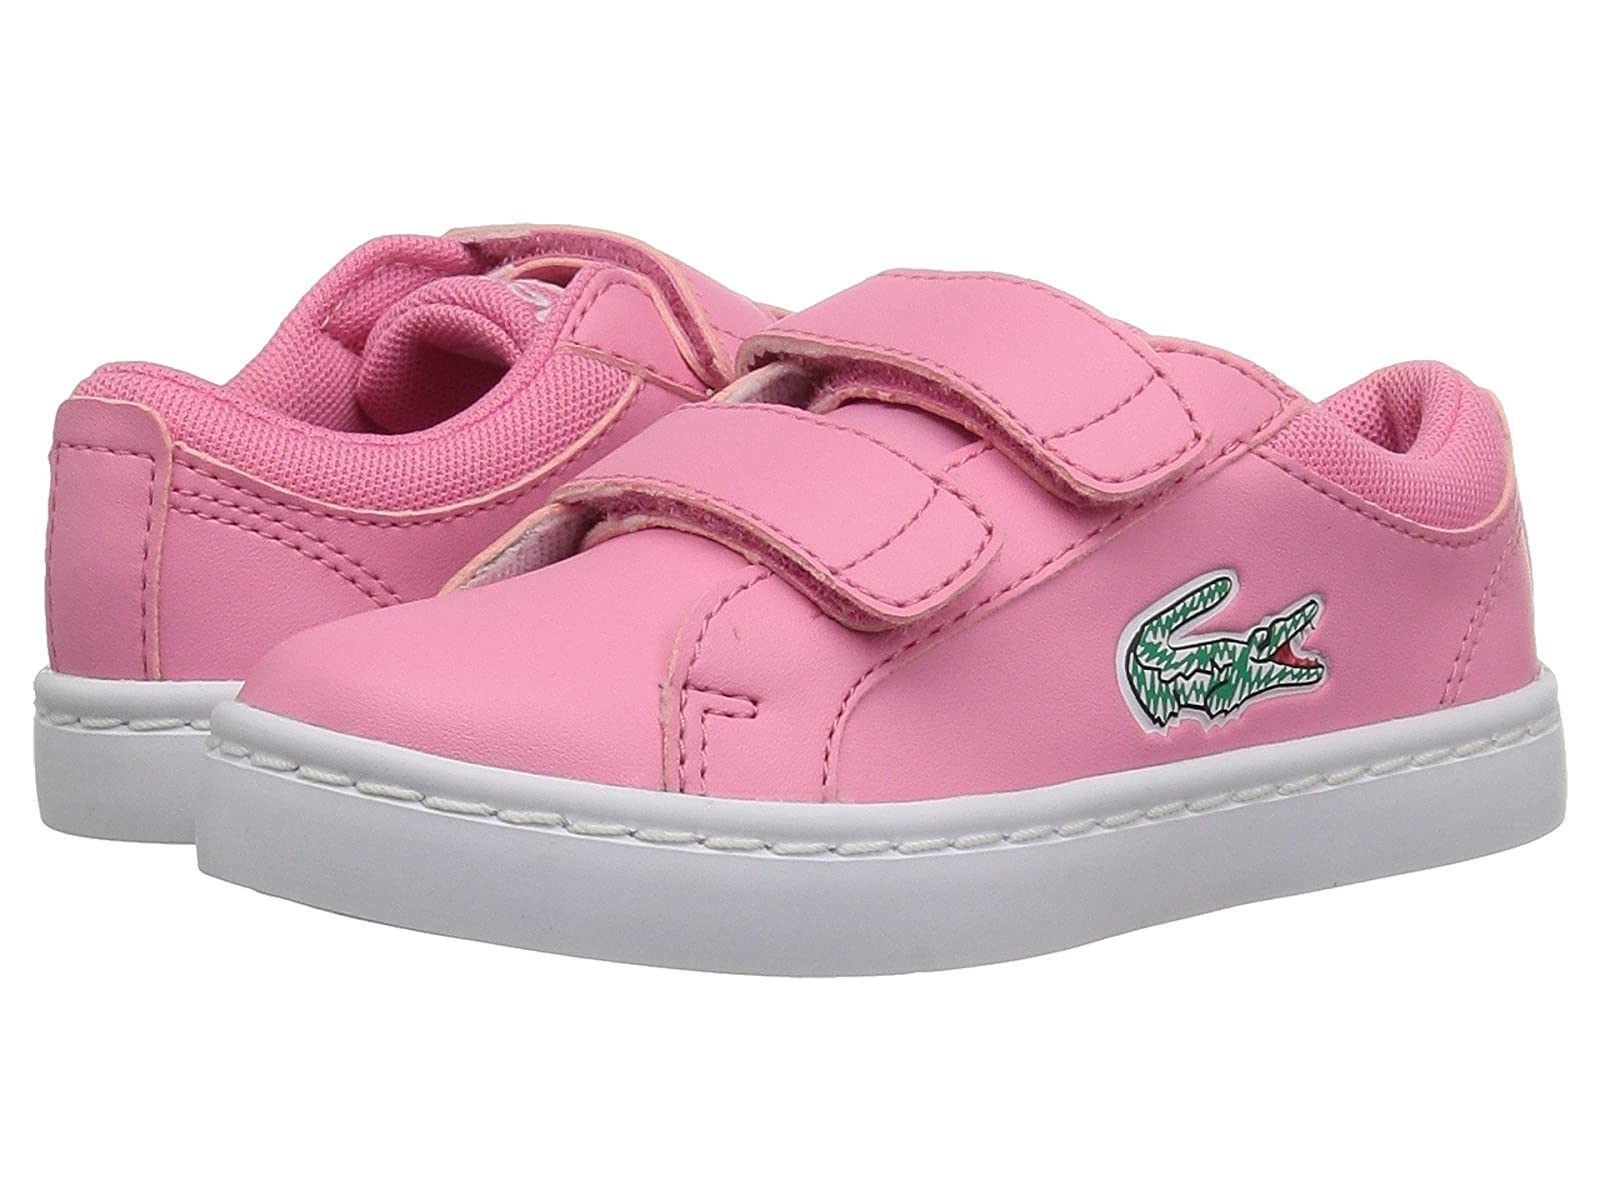 Lacoste Kids Straightset H&L (Toddler/Little Kid)Atmospheric grades have affordable shoes